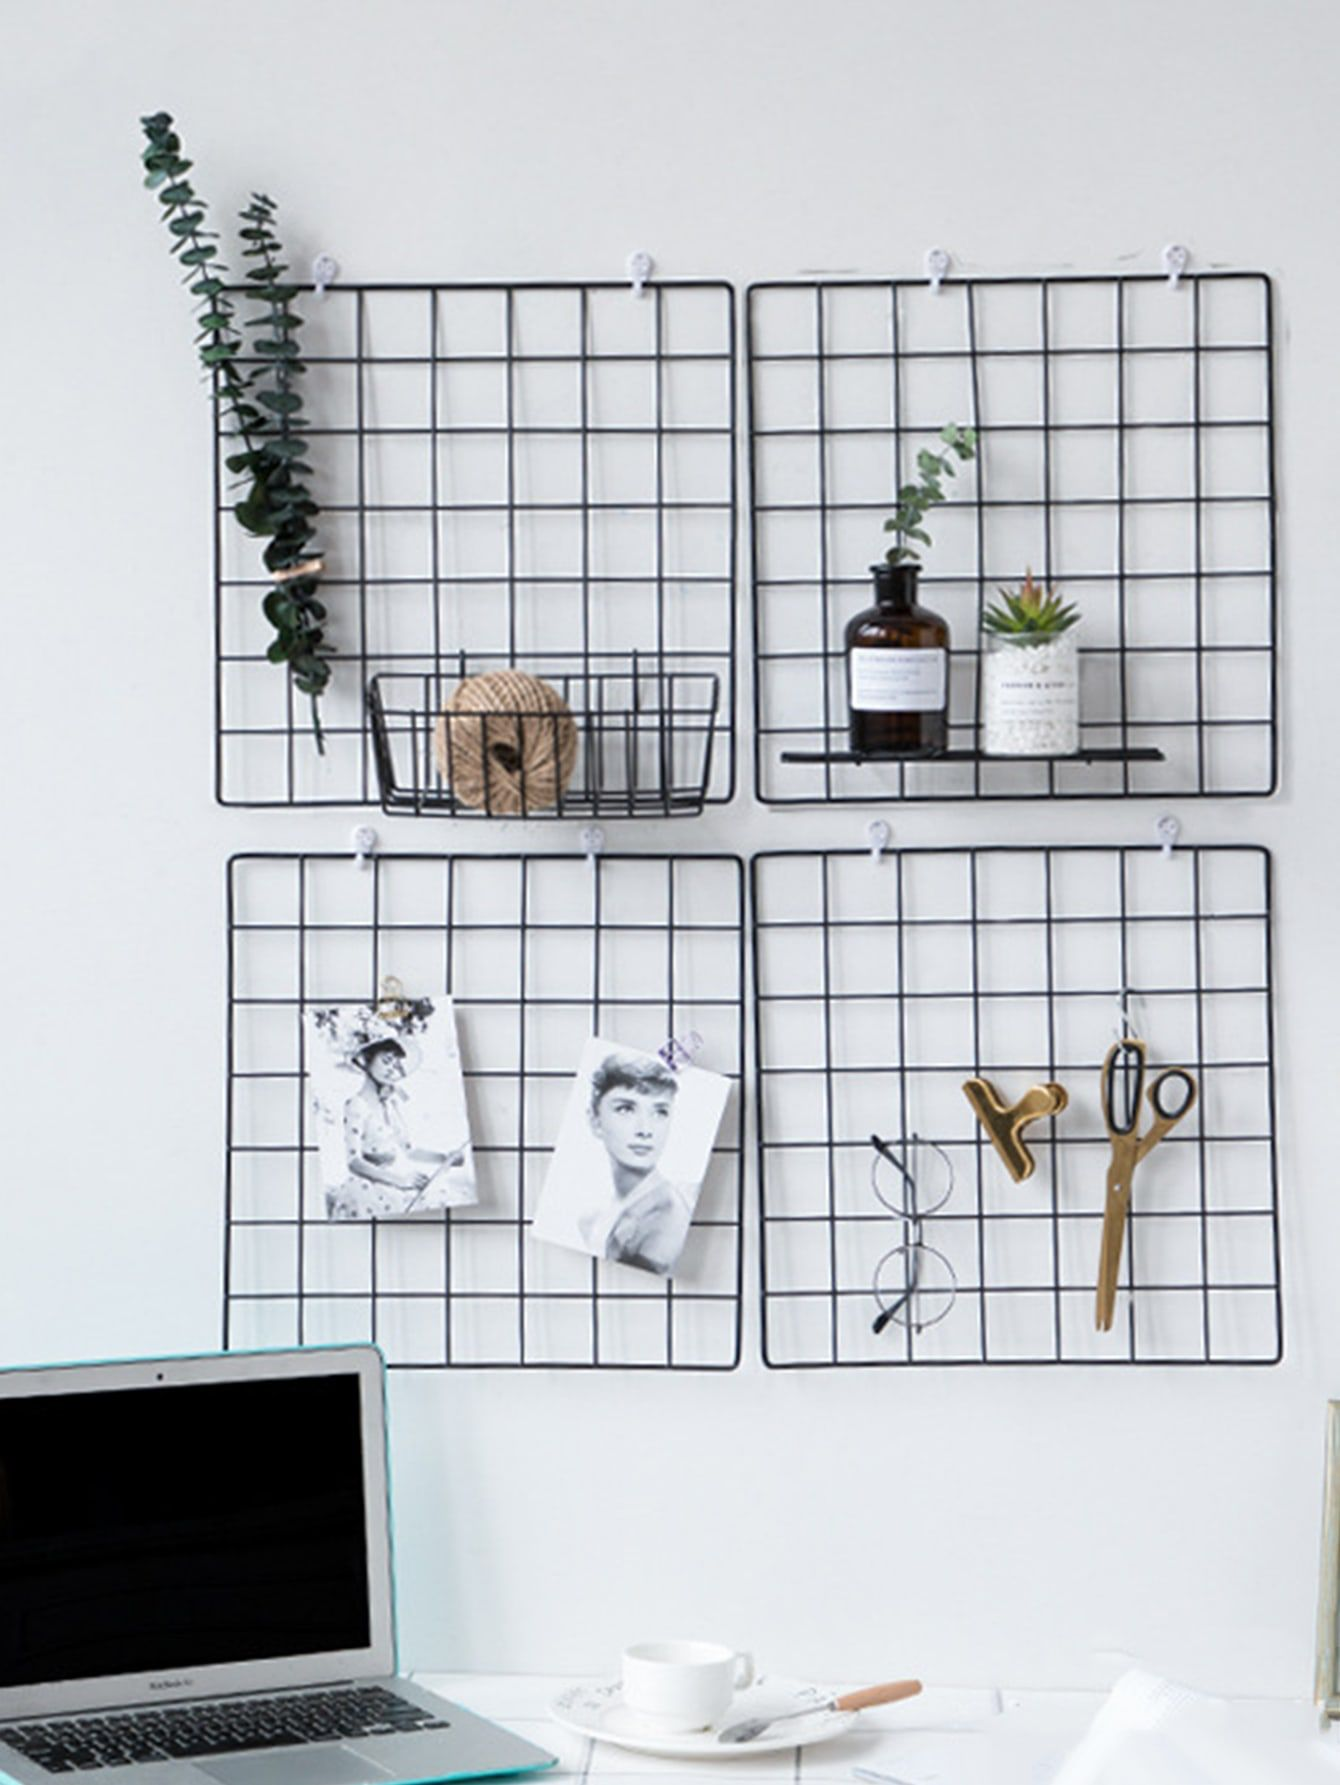 1pc Iron Grid Wall Hanging Decorative Rack Check Out This 1pc Iron Grid Wall Hanging Decorative Rack On Shein And Explore Metal Wall Grid Decor Cute Room Decor